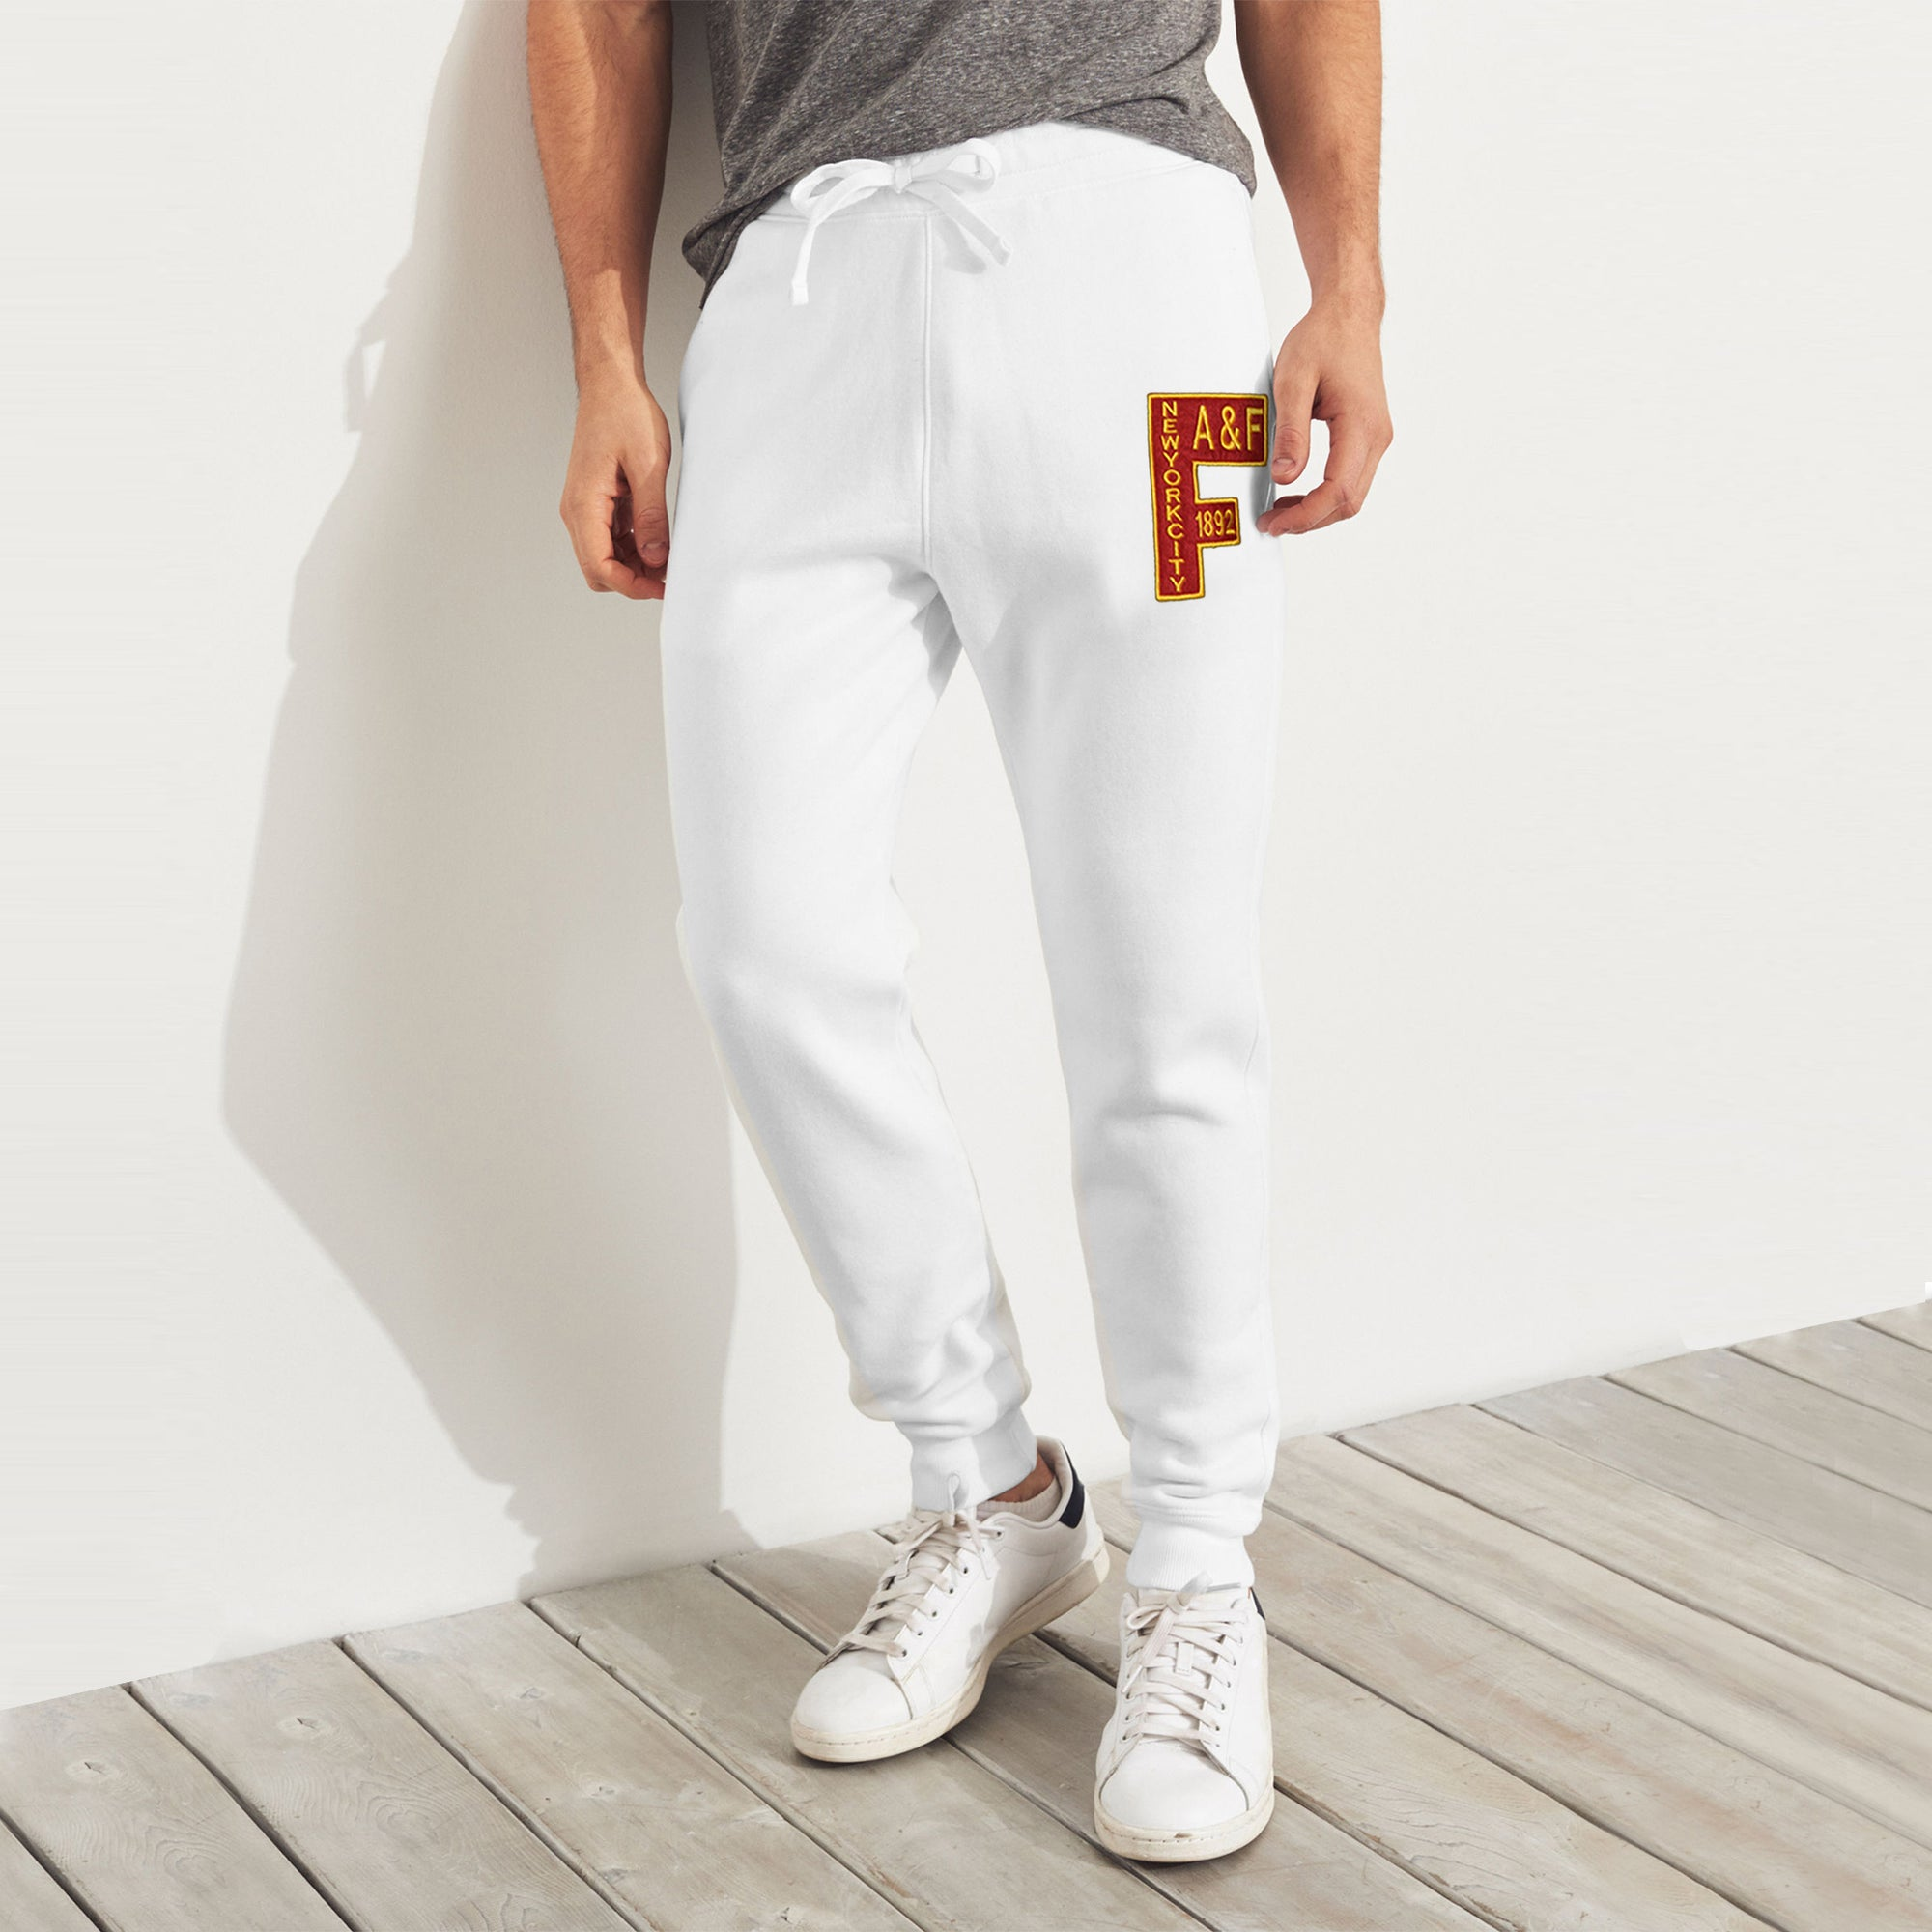 A&F Fleece Slim Fit Jogger Trouser For Men-White-BE7816